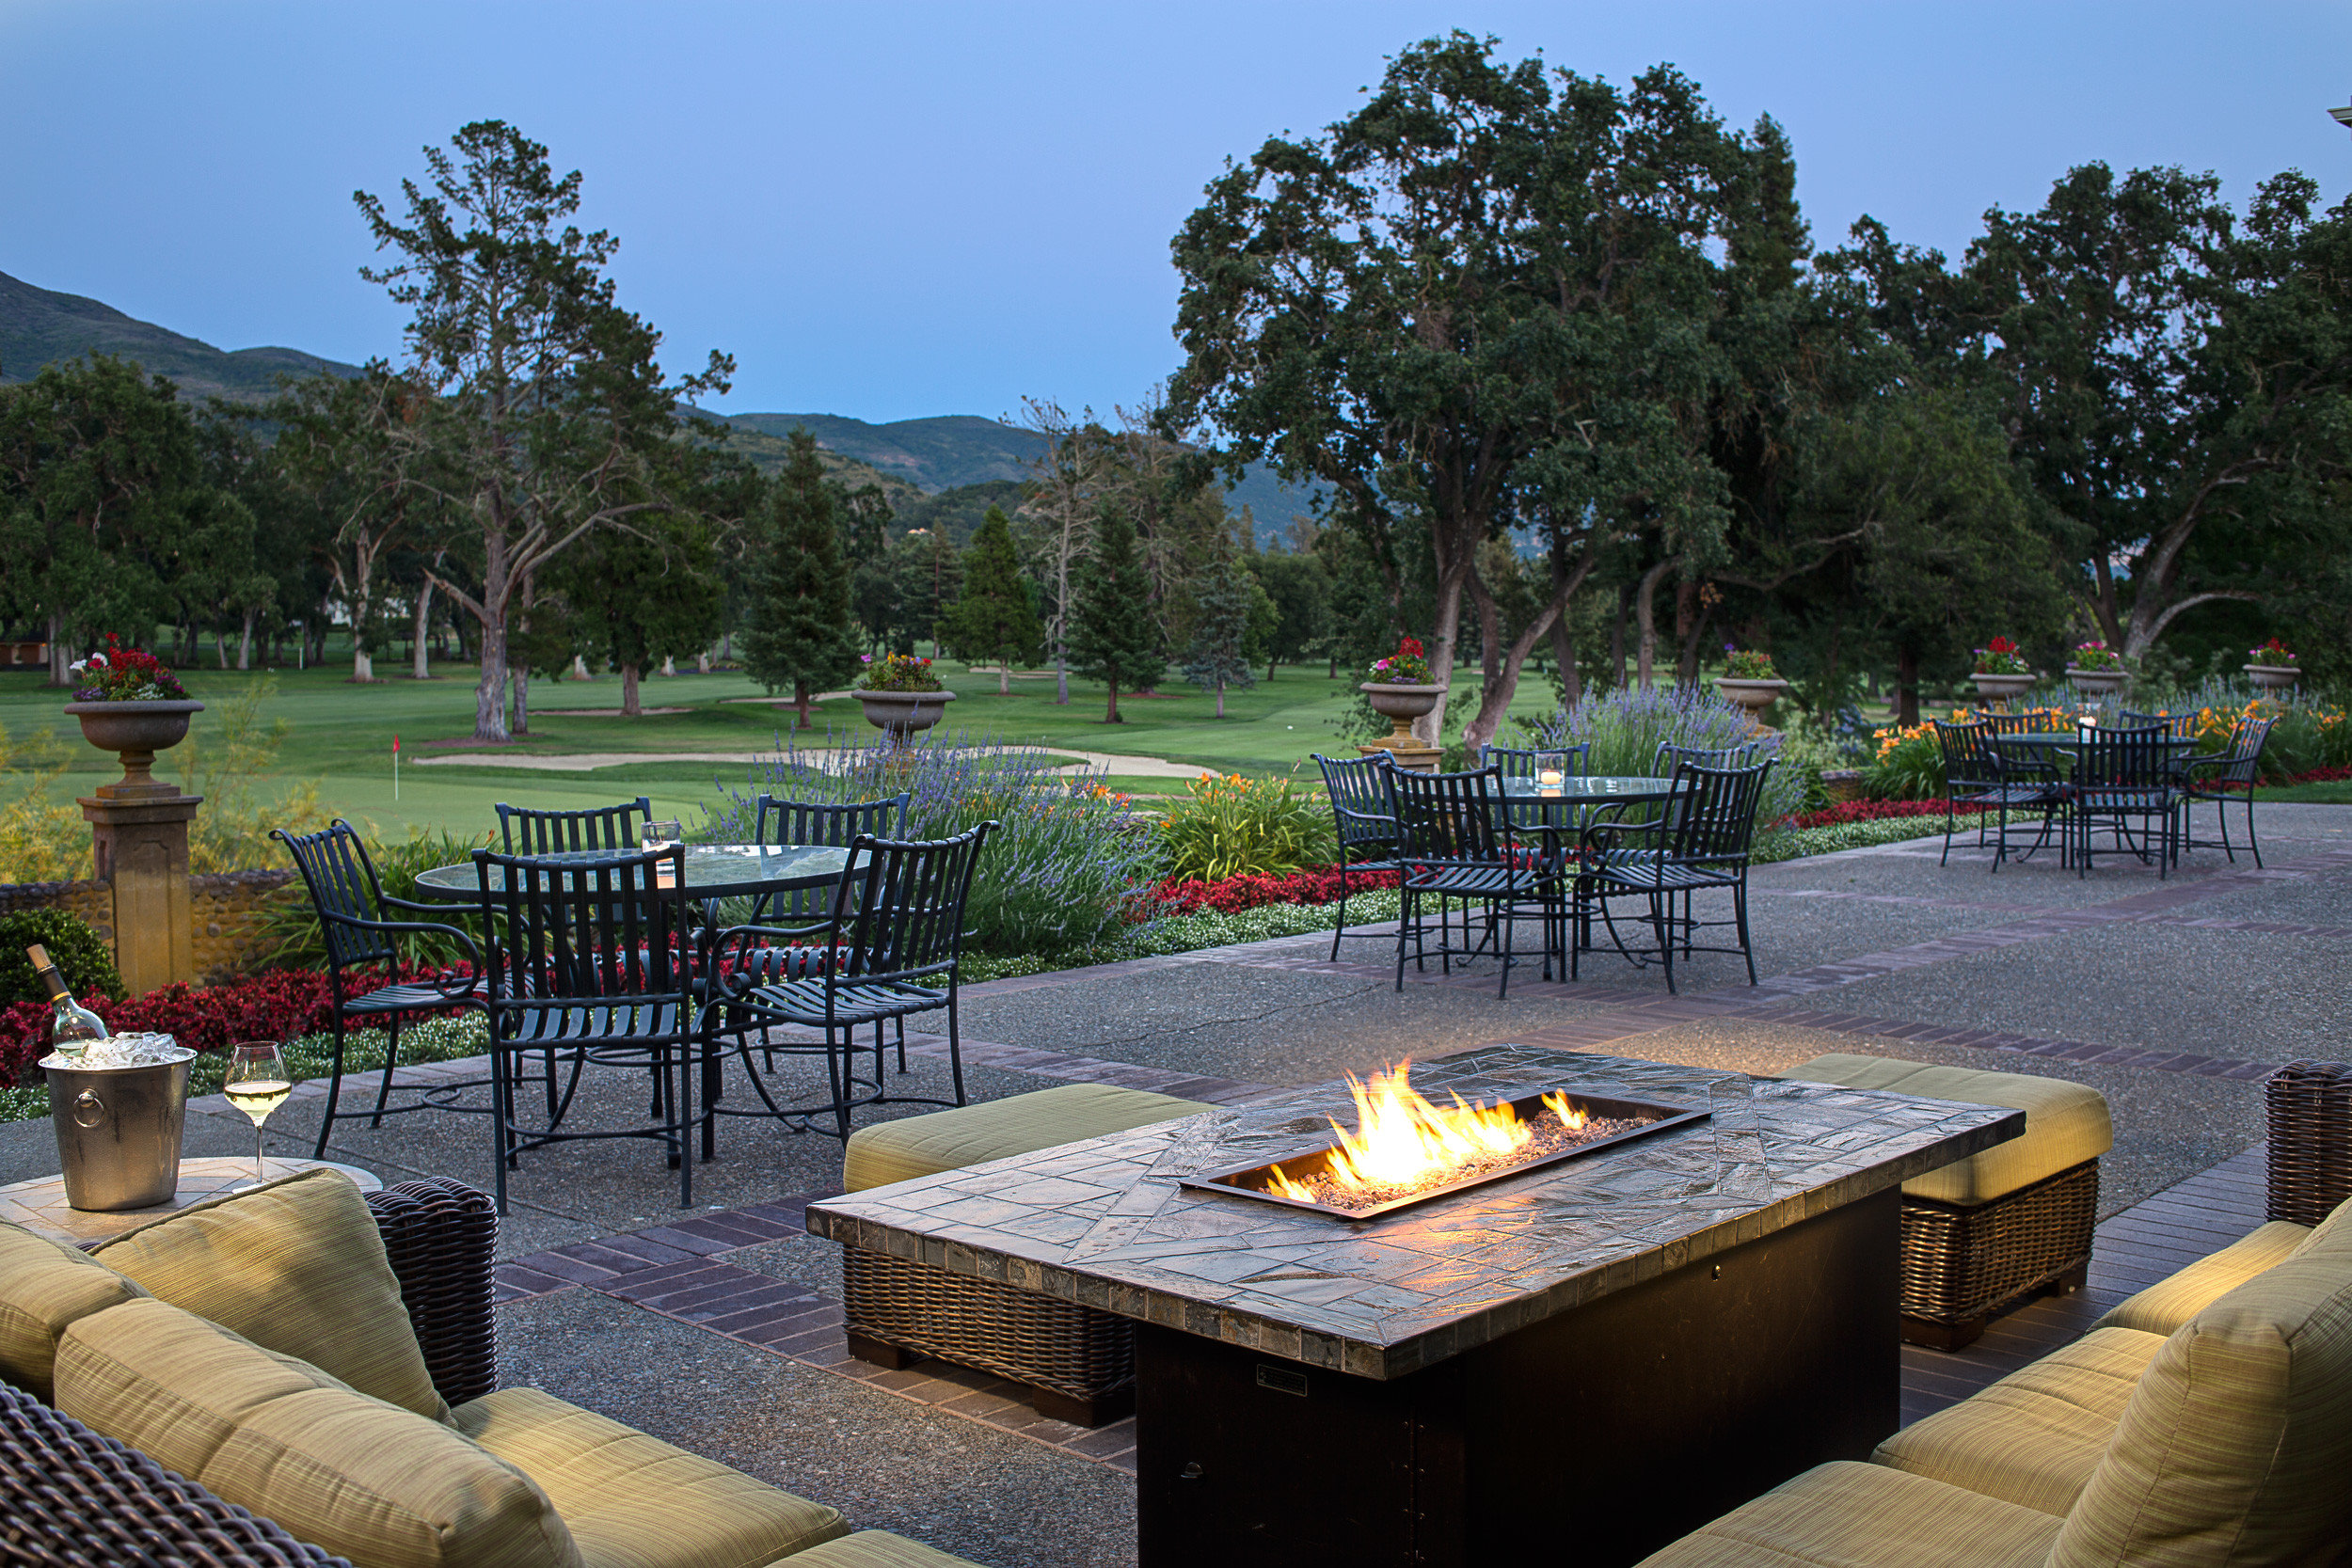 Drink Eat Grounds Mountains Natural wonders Outdoor Activities Outdoors Romance Scenic views Wine-Tasting Winery tree sky chair leisure swimming pool backyard Resort Villa set